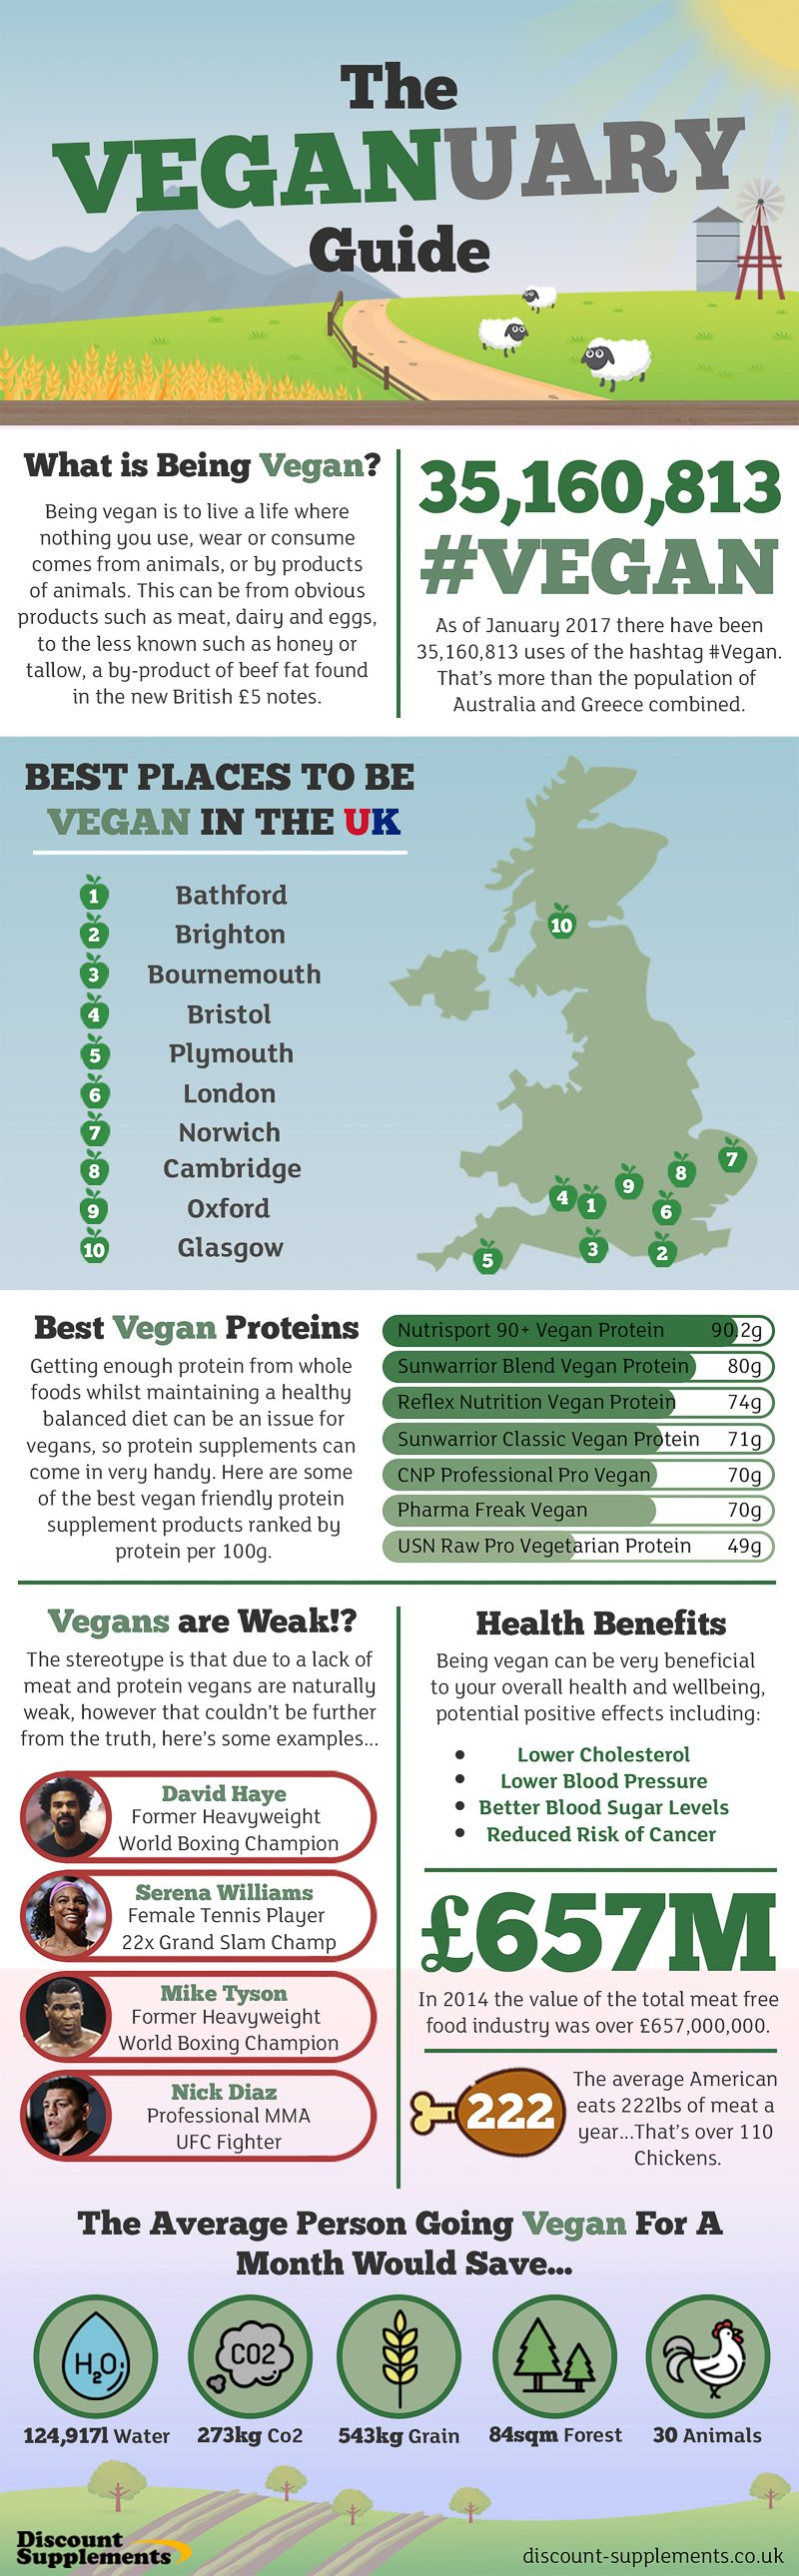 Veganuary guide infographic